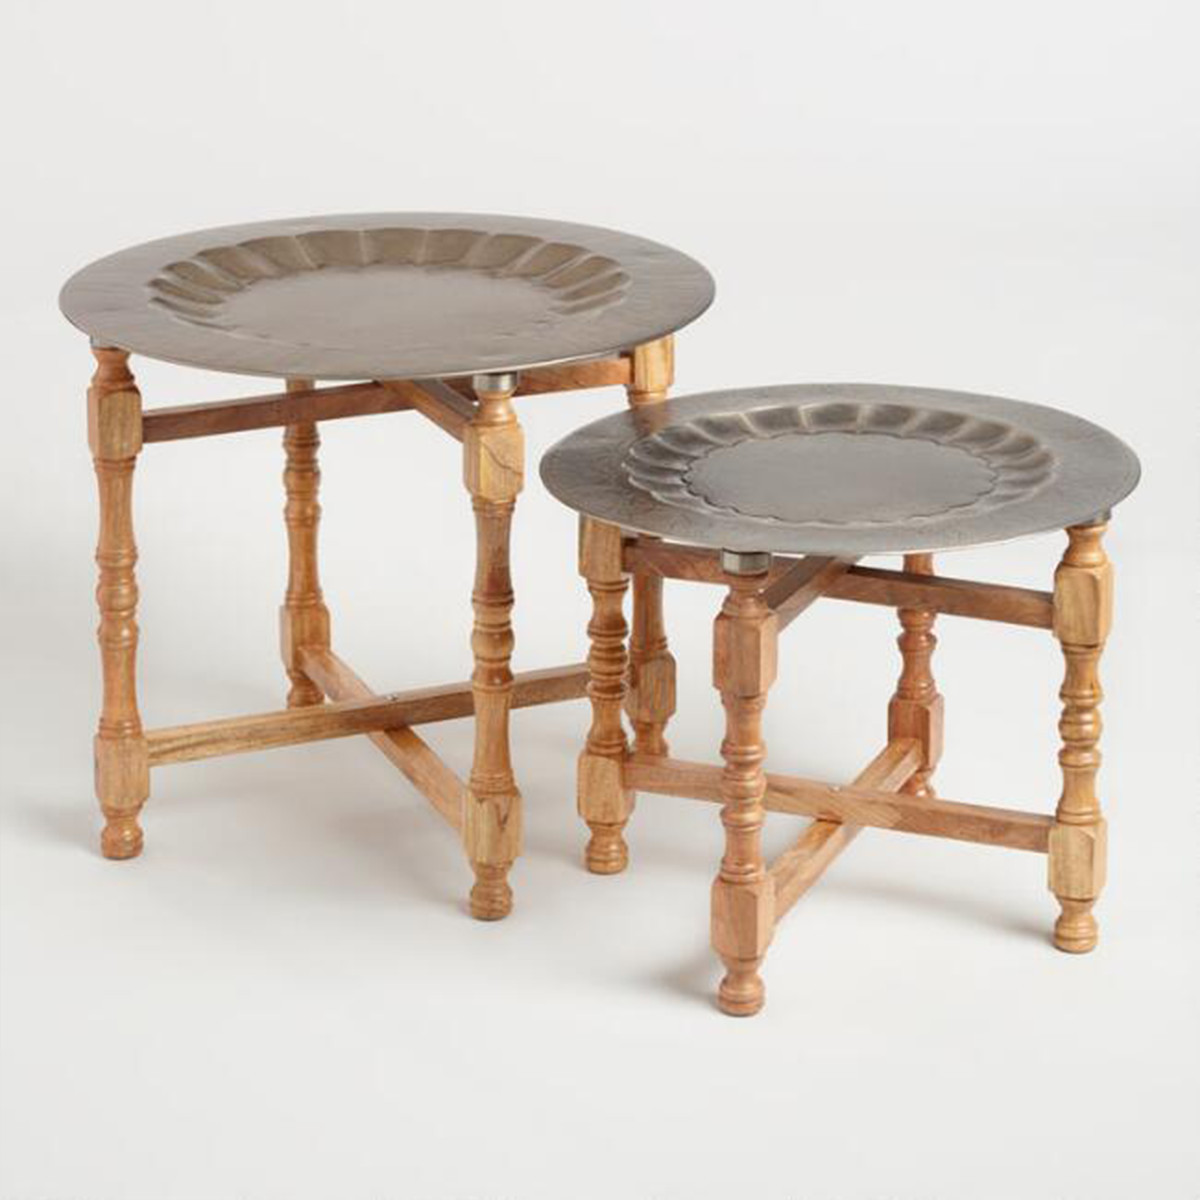 Inspired by traditional Indian tea serving trays, this set made of mango wood and embossed iron creates a unique ambience. photo